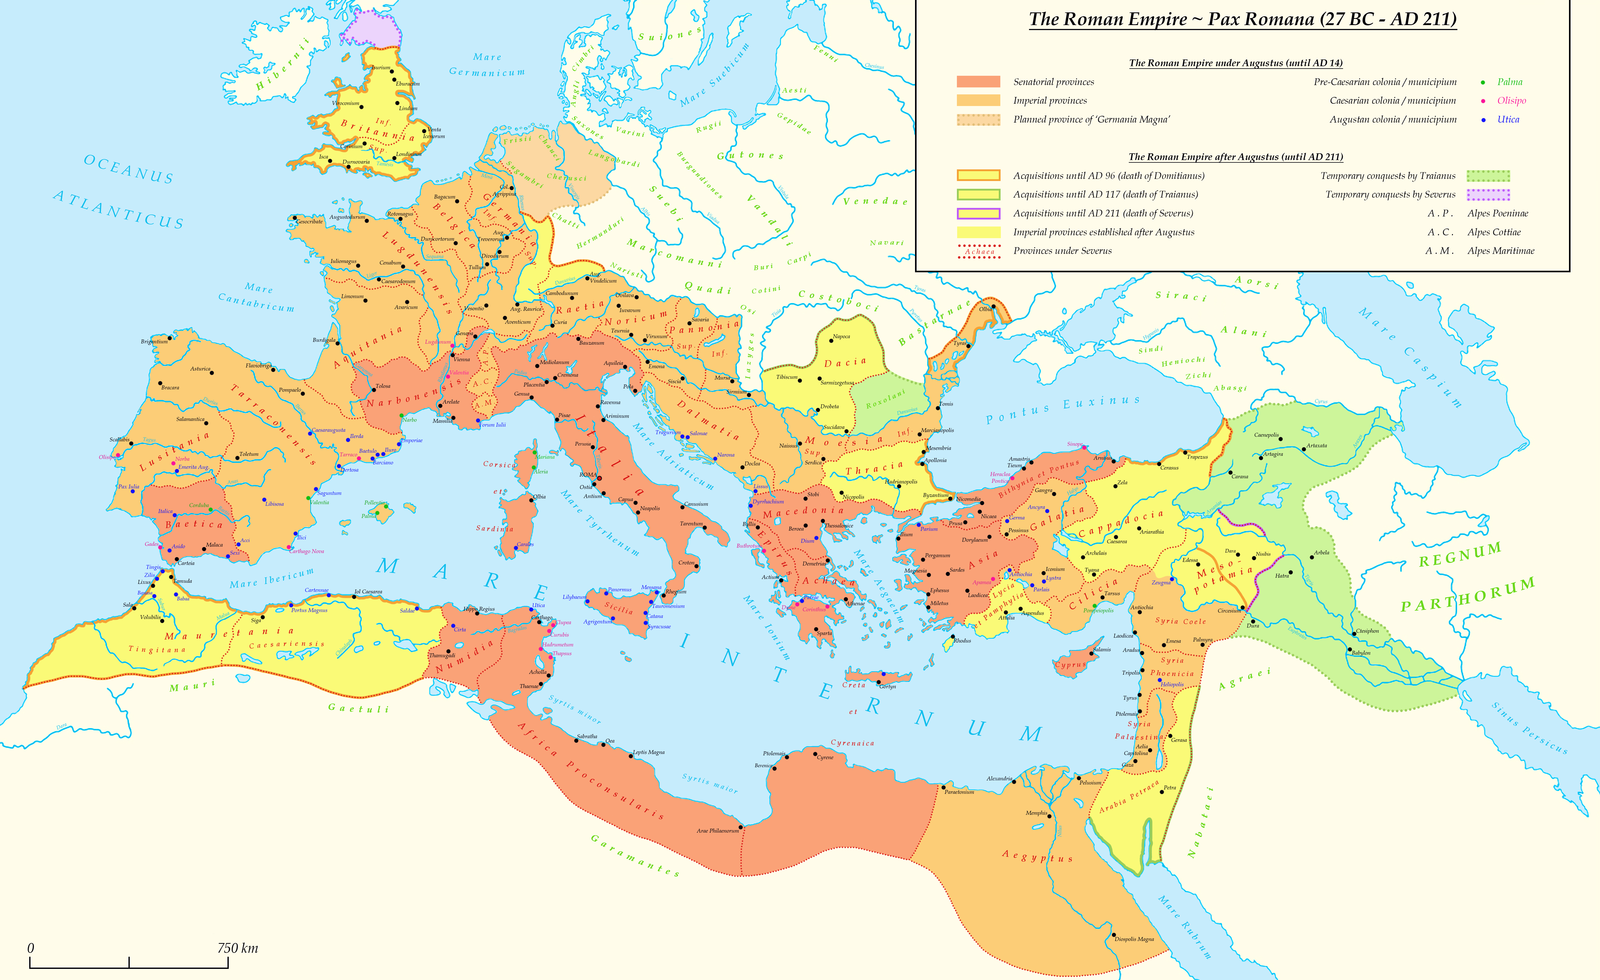 an analysis of the expansion of the rome oversees and the history of the roman empire since early da When edward gibbon began to write a history of the decline and fall of the roman empire, he intended to conclude his work at the end of the western empire.